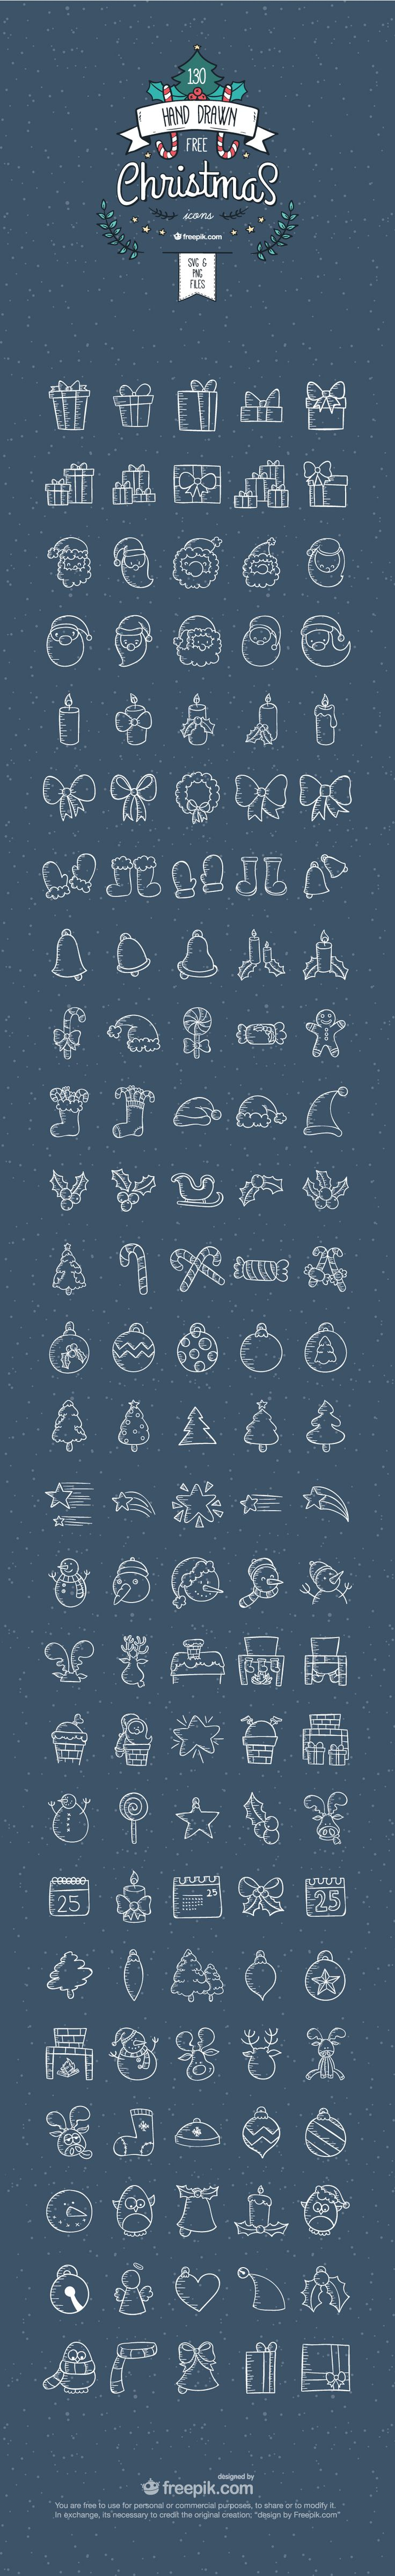 130 free Christmas Icons you can download right now!